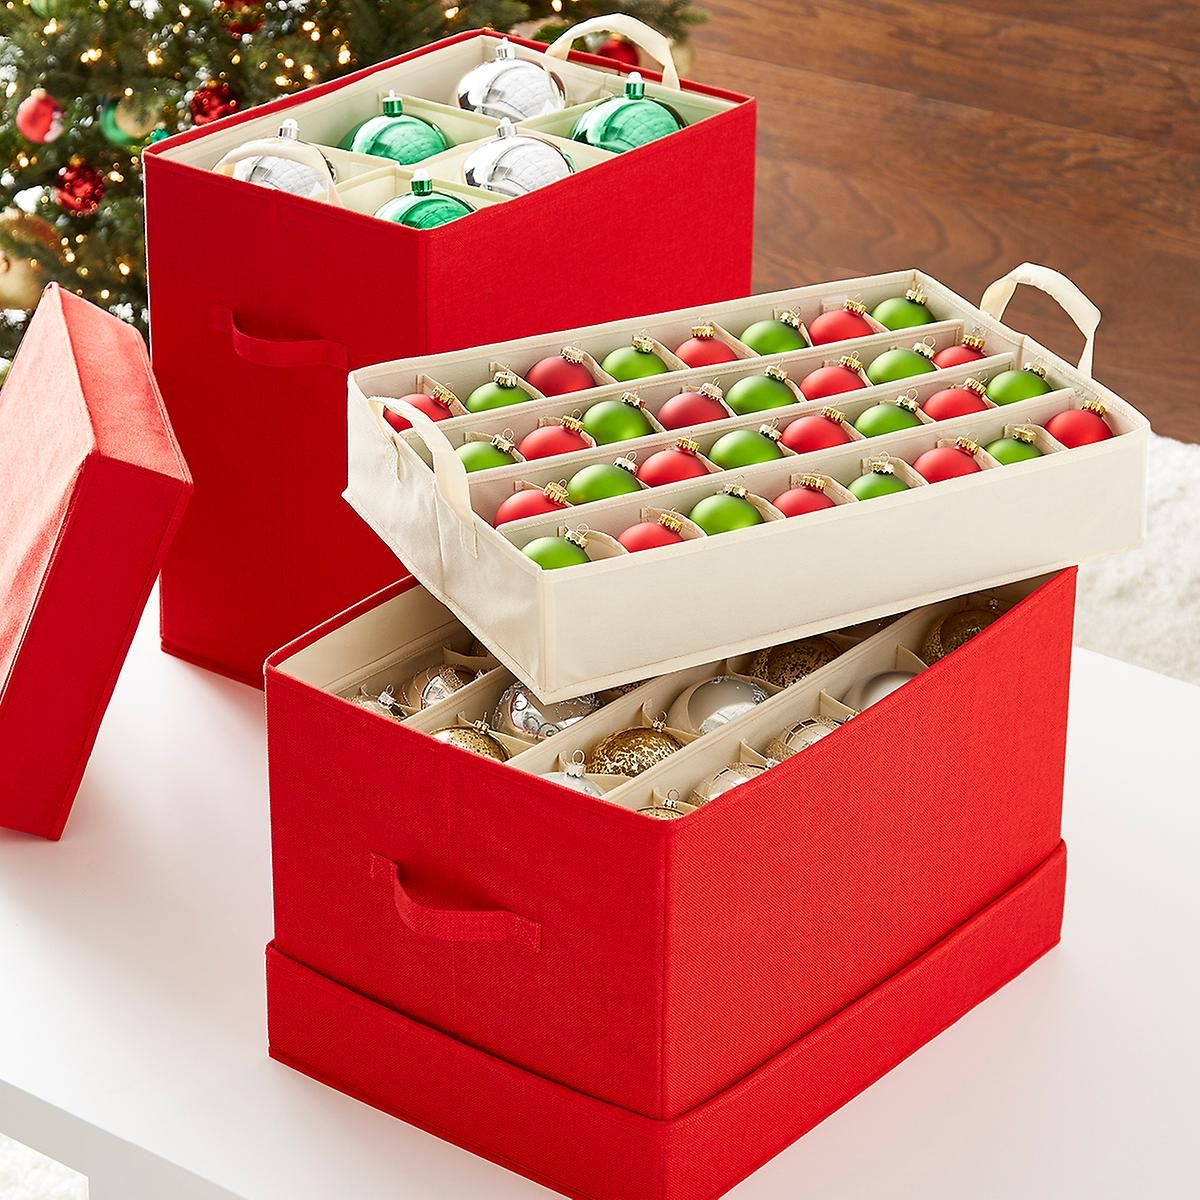 Jubilee ornament storage chests ornament storage container store